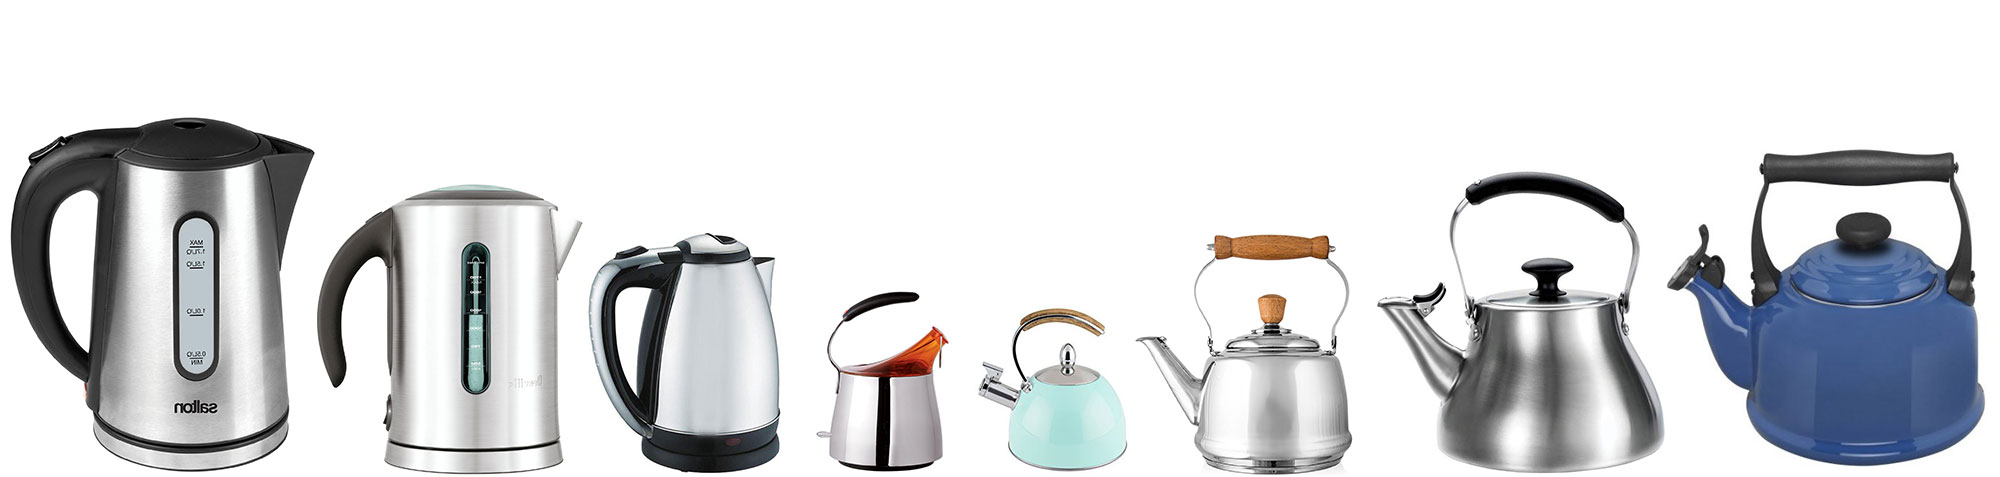 Different Kettles